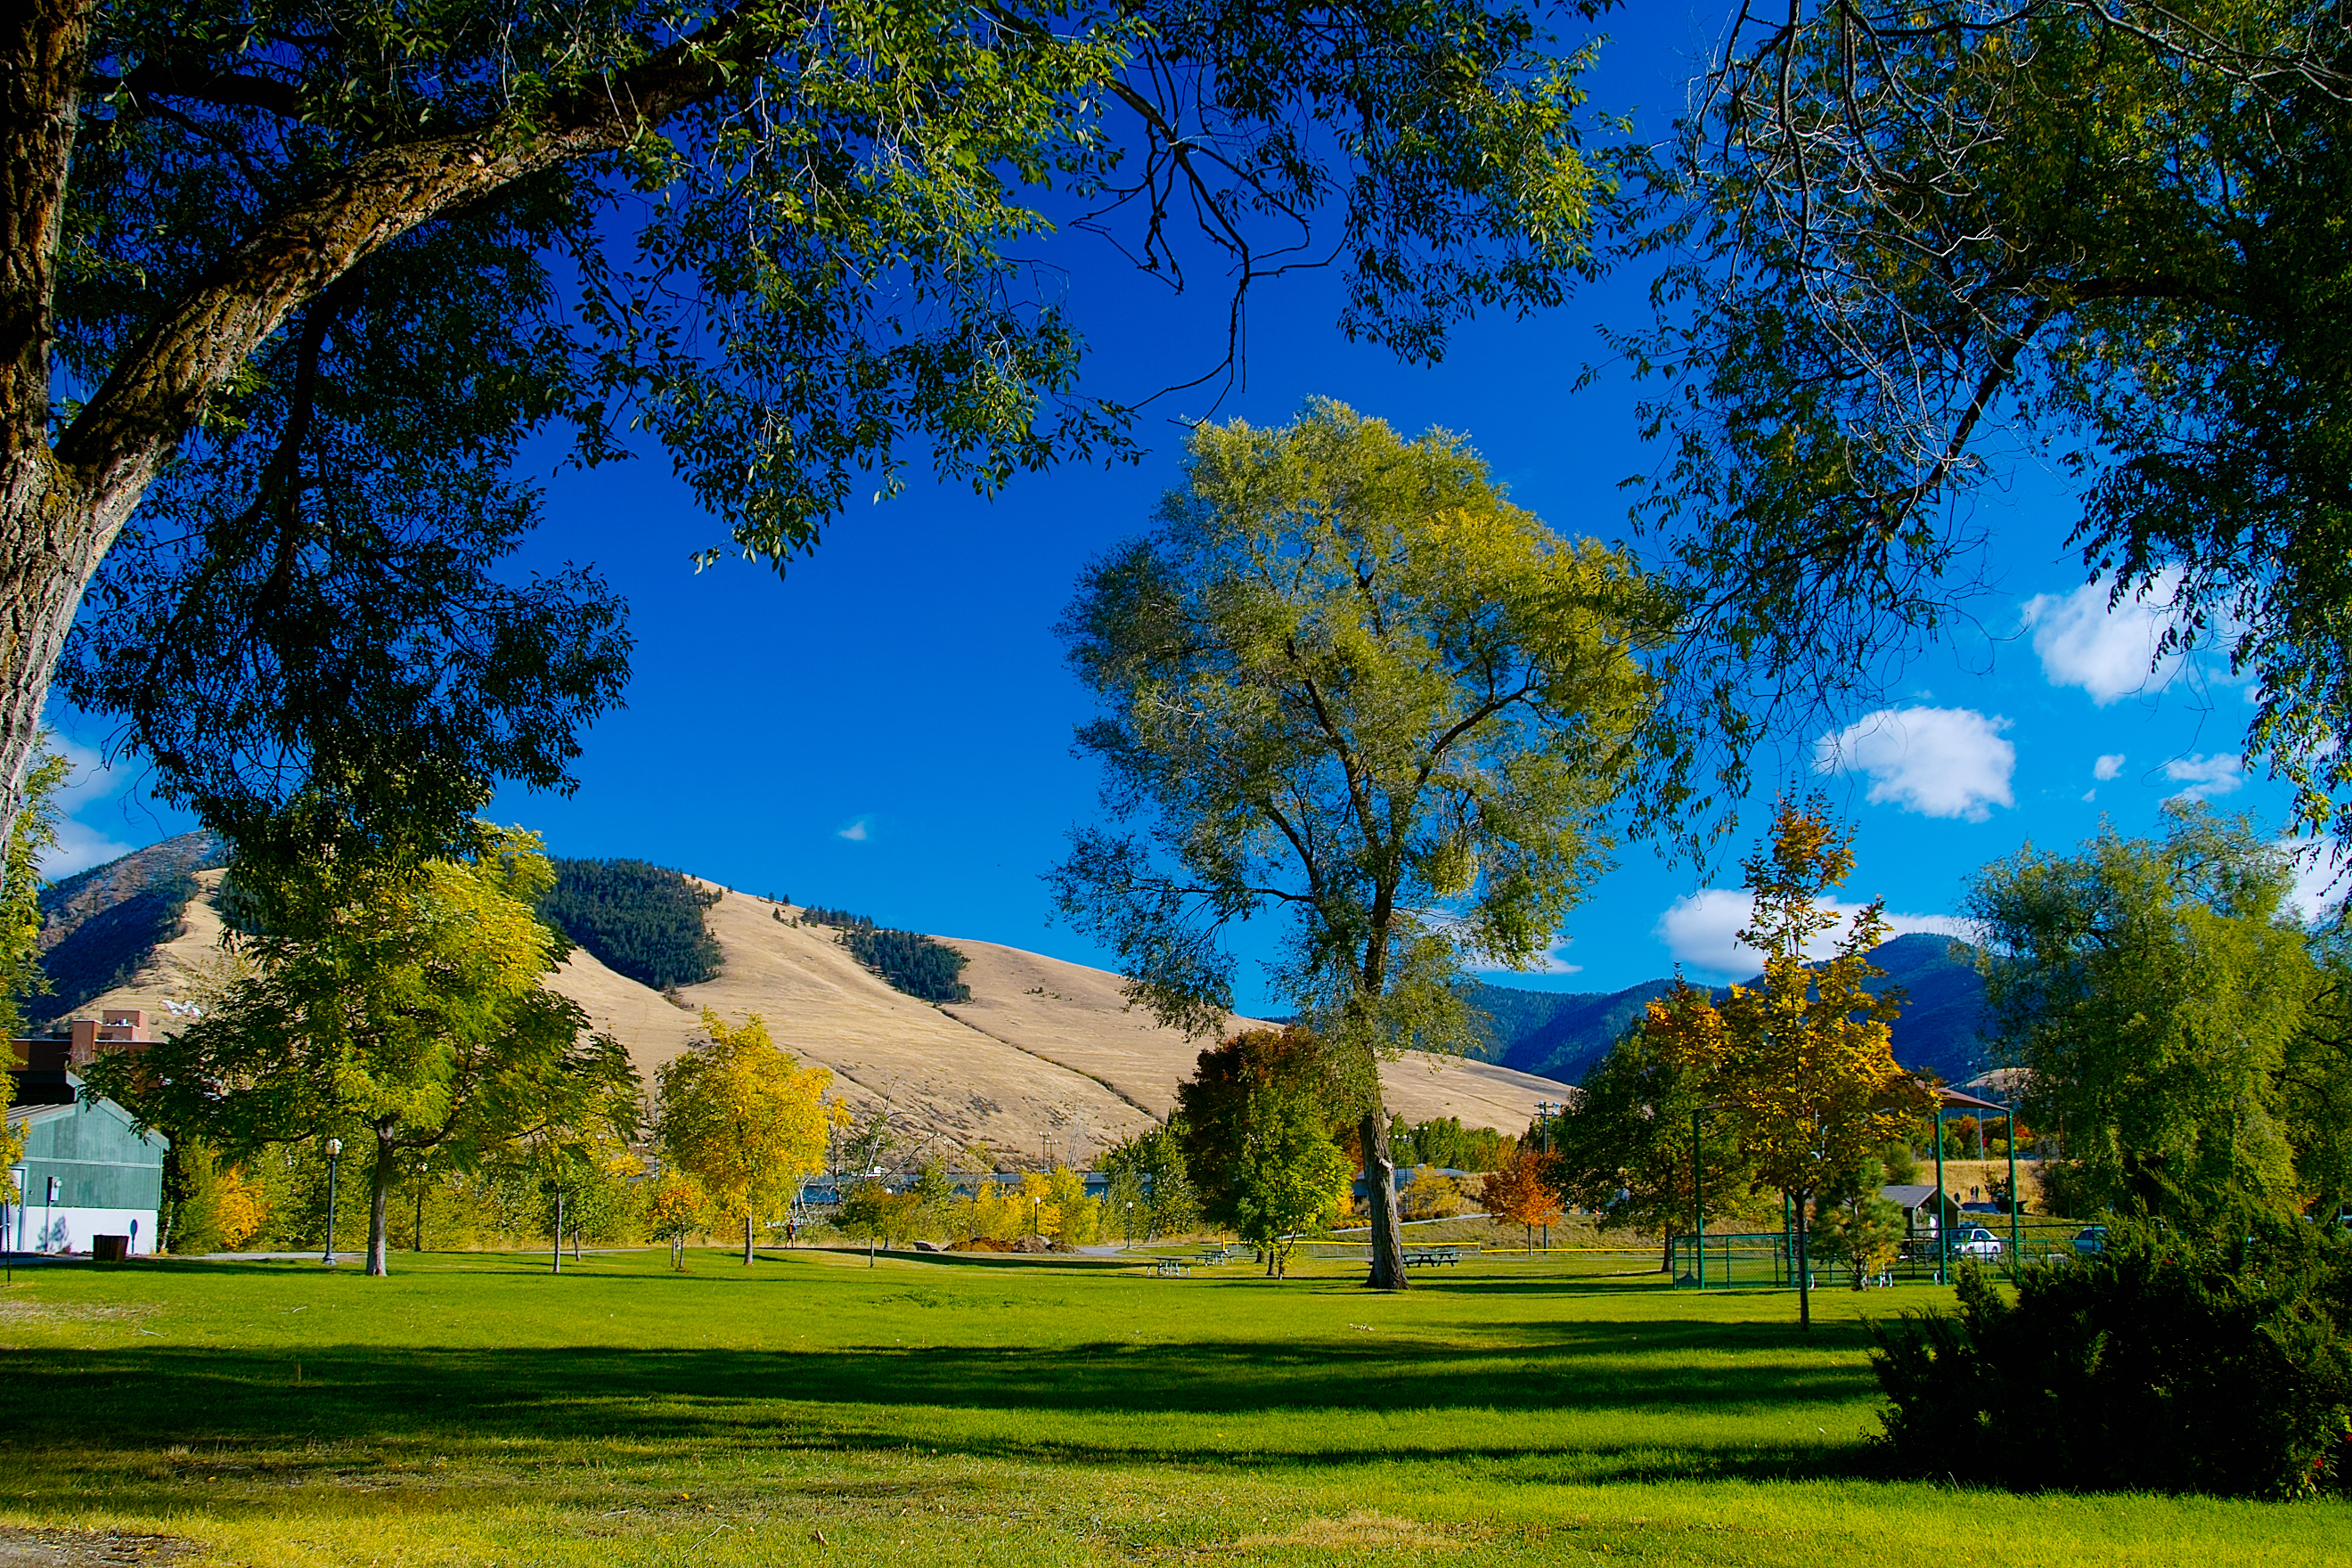 picture of a park in Missoula, Montana